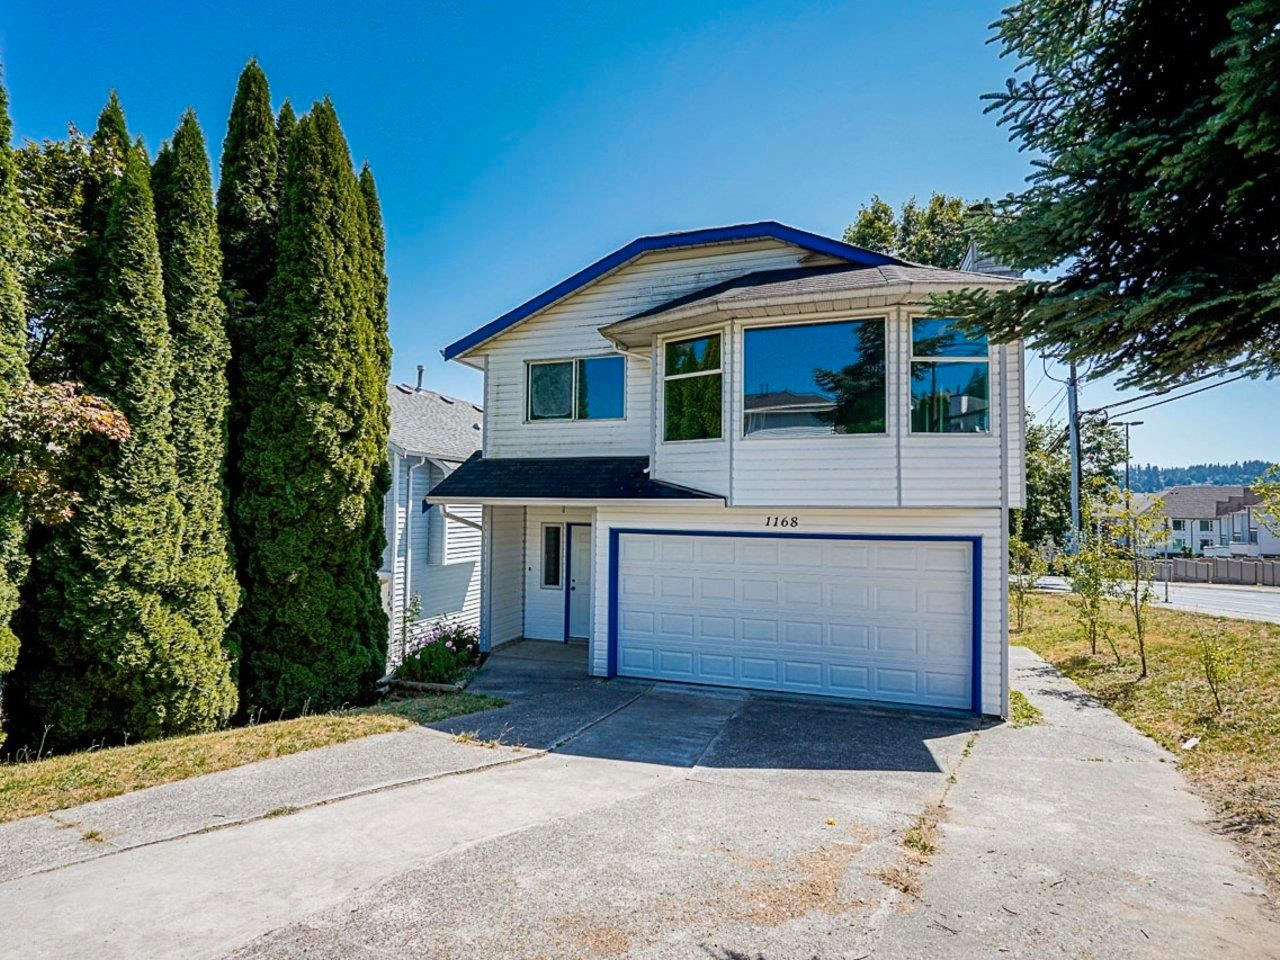 """Main Photo: 1168 DURANT Drive in Coquitlam: Canyon Springs House for sale in """"Canyon Springs"""" : MLS®# R2602899"""